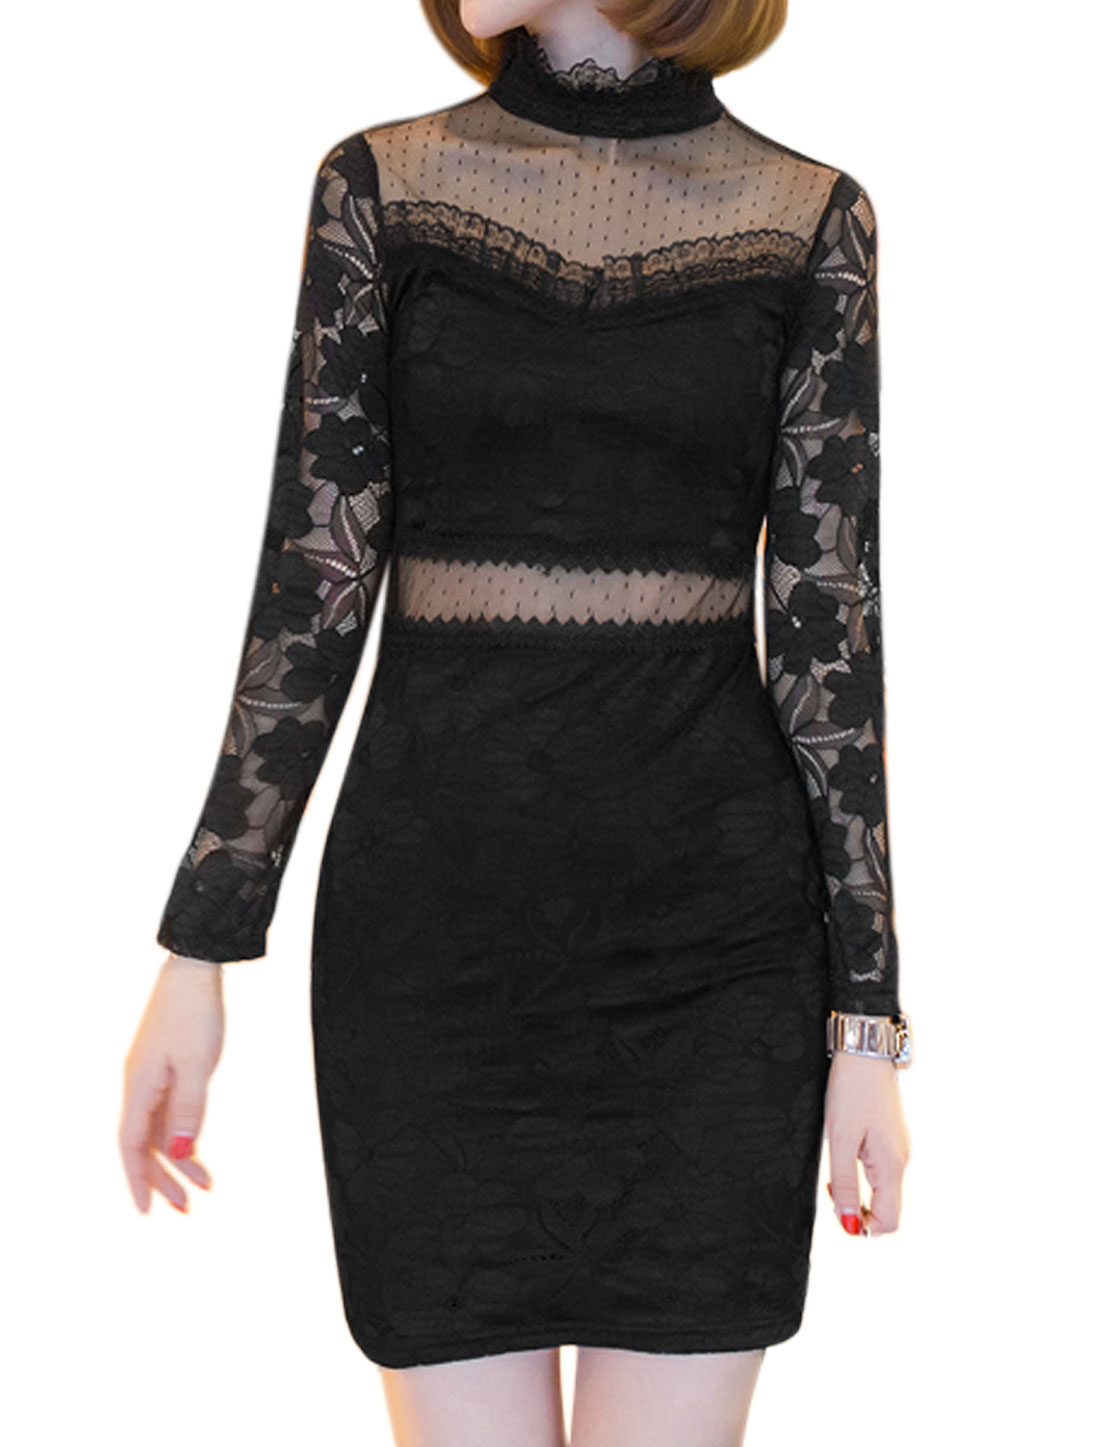 Woman Ruffled Collar Mesh Panel Floral Lace Bodycon Dress Black S